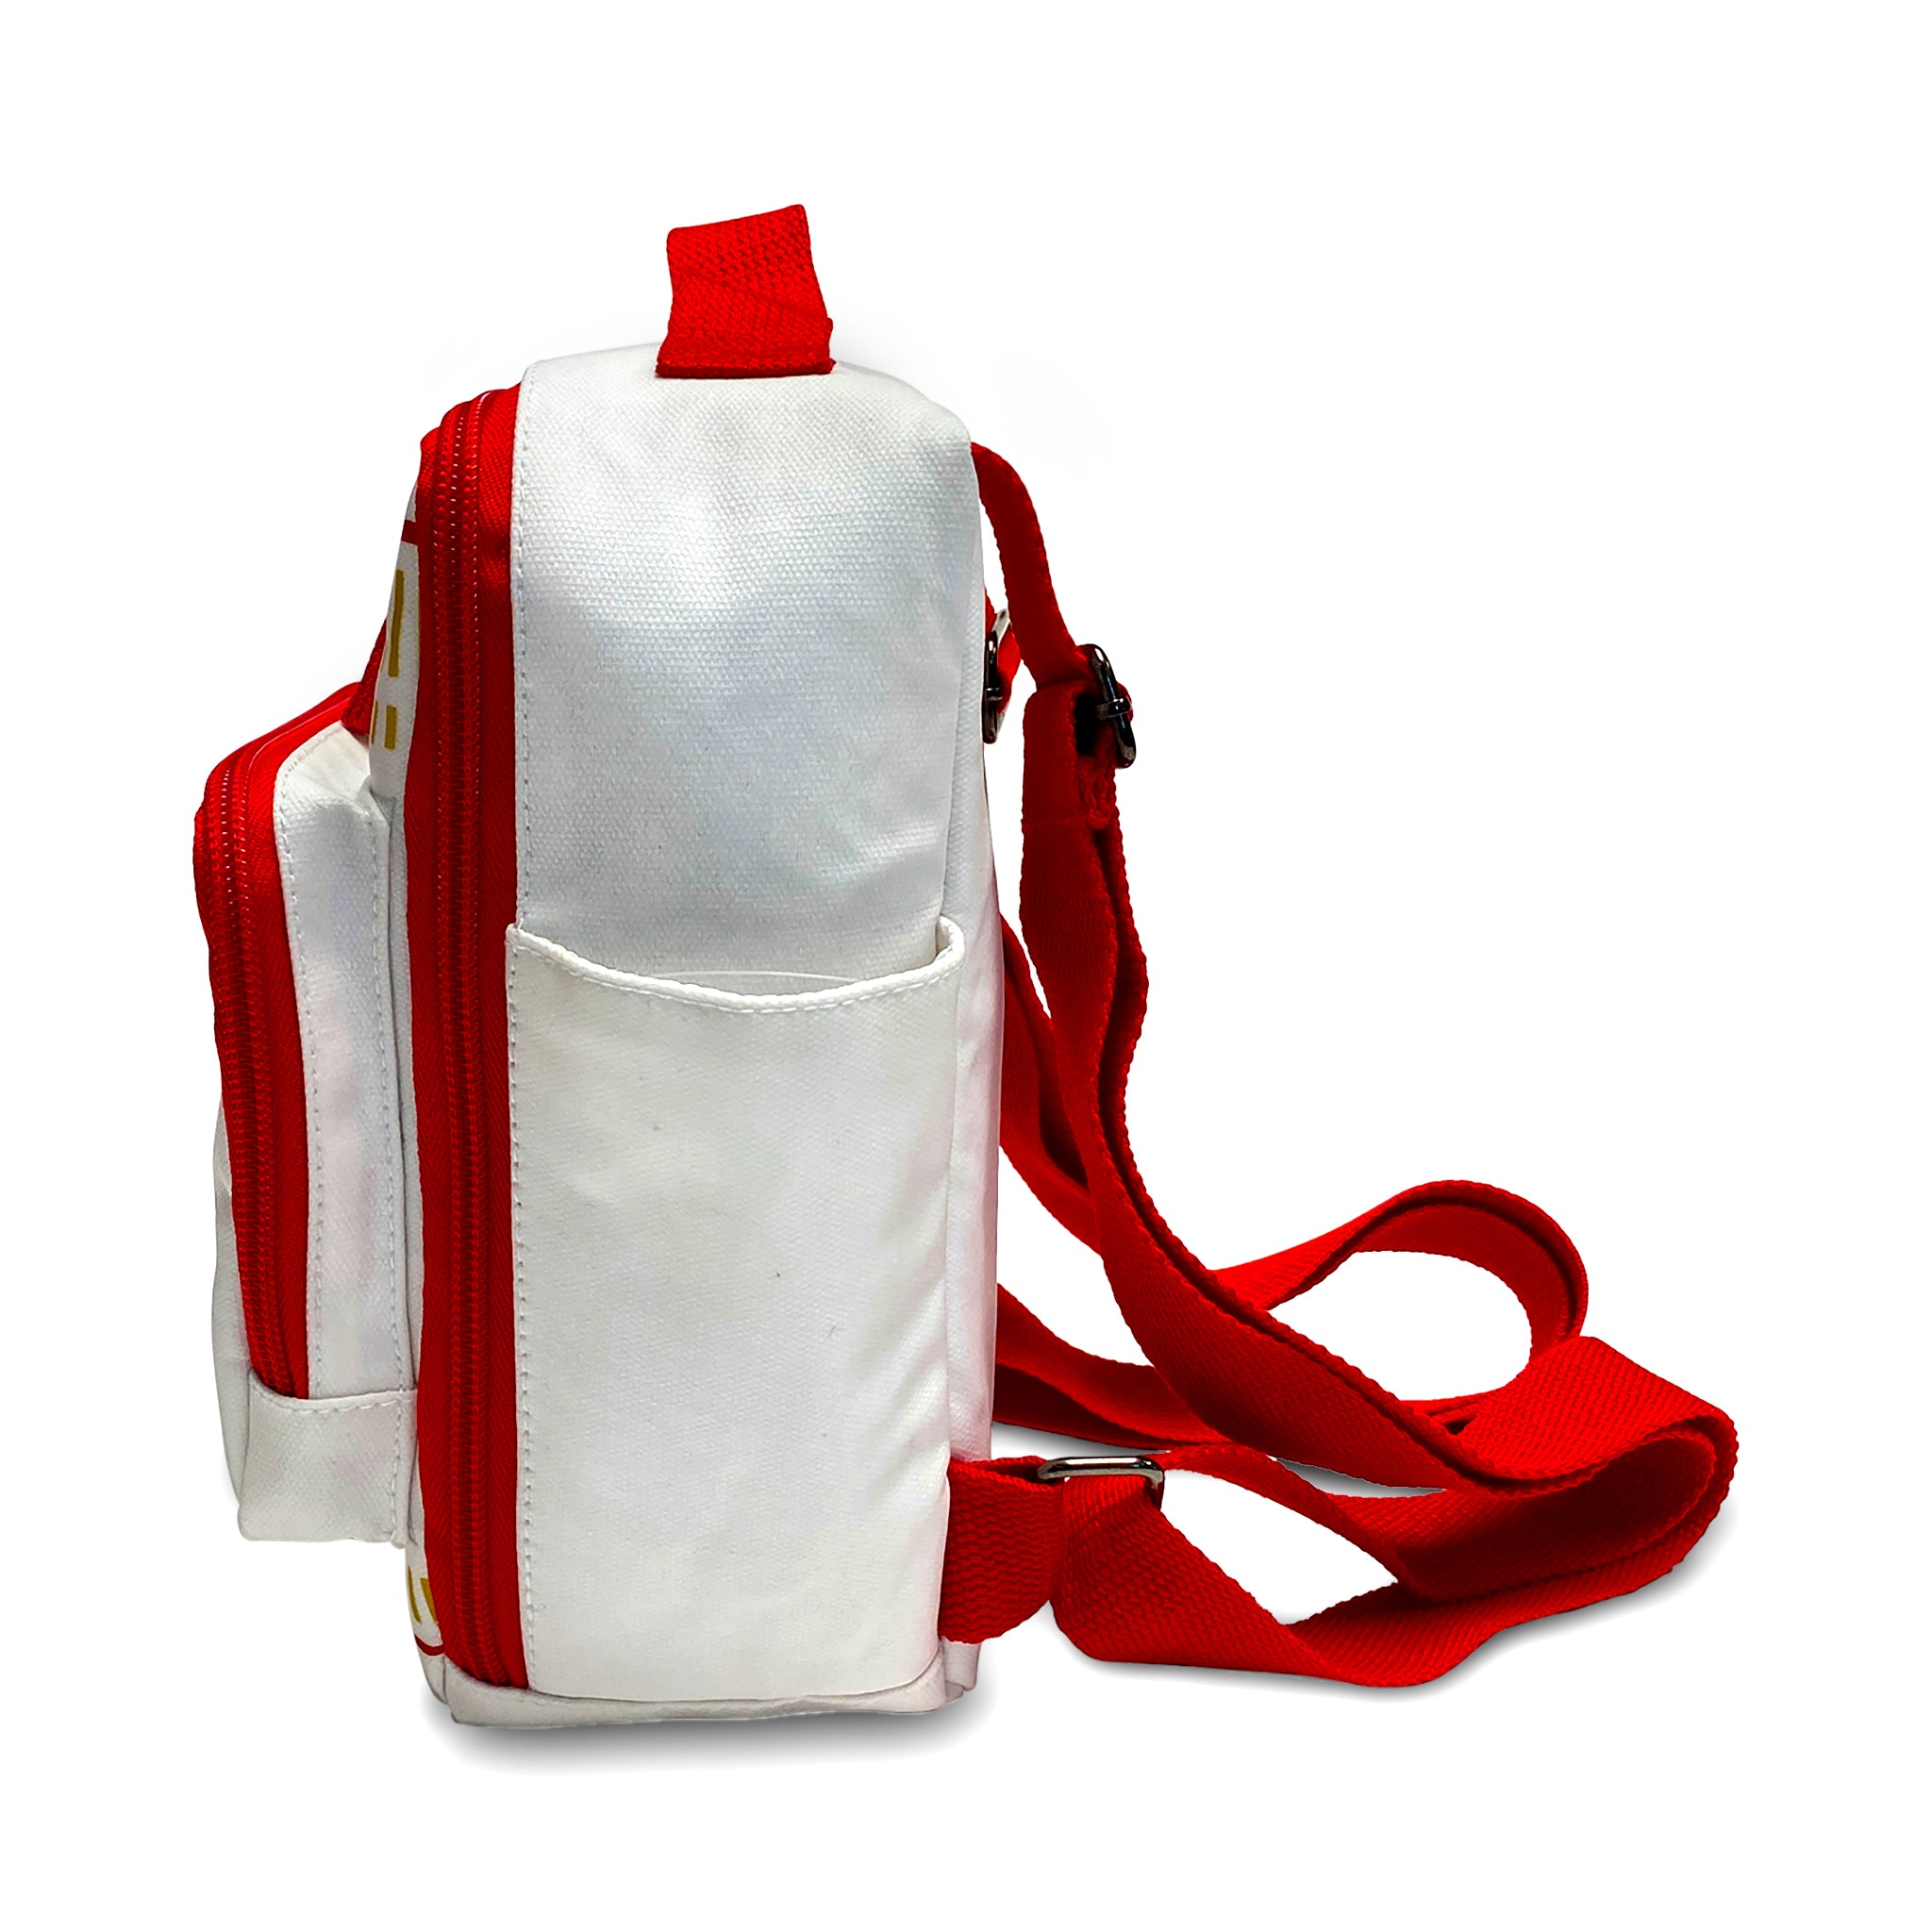 CUP NOODLES MINI BACKPACK